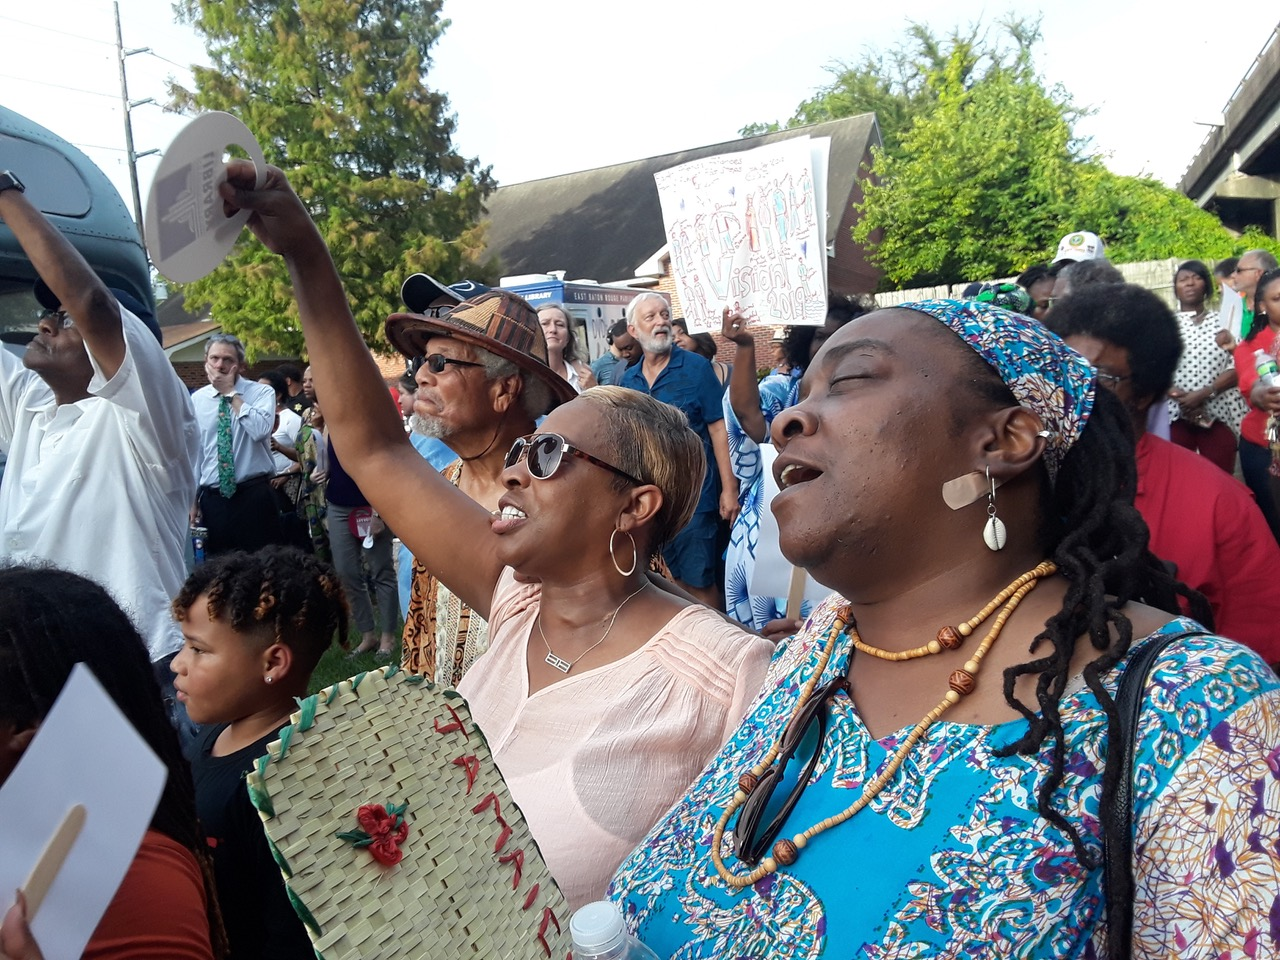 Erica Williams Mitchell, Phyllis, and Owusu Bandele, Ph.D. sing along with the crowd gathering at Sadie Roberts-Joseph vigil at the Baton Rouge African-American History Museum. Photo by Antione GHOST Mitchell @the_art_alchemist